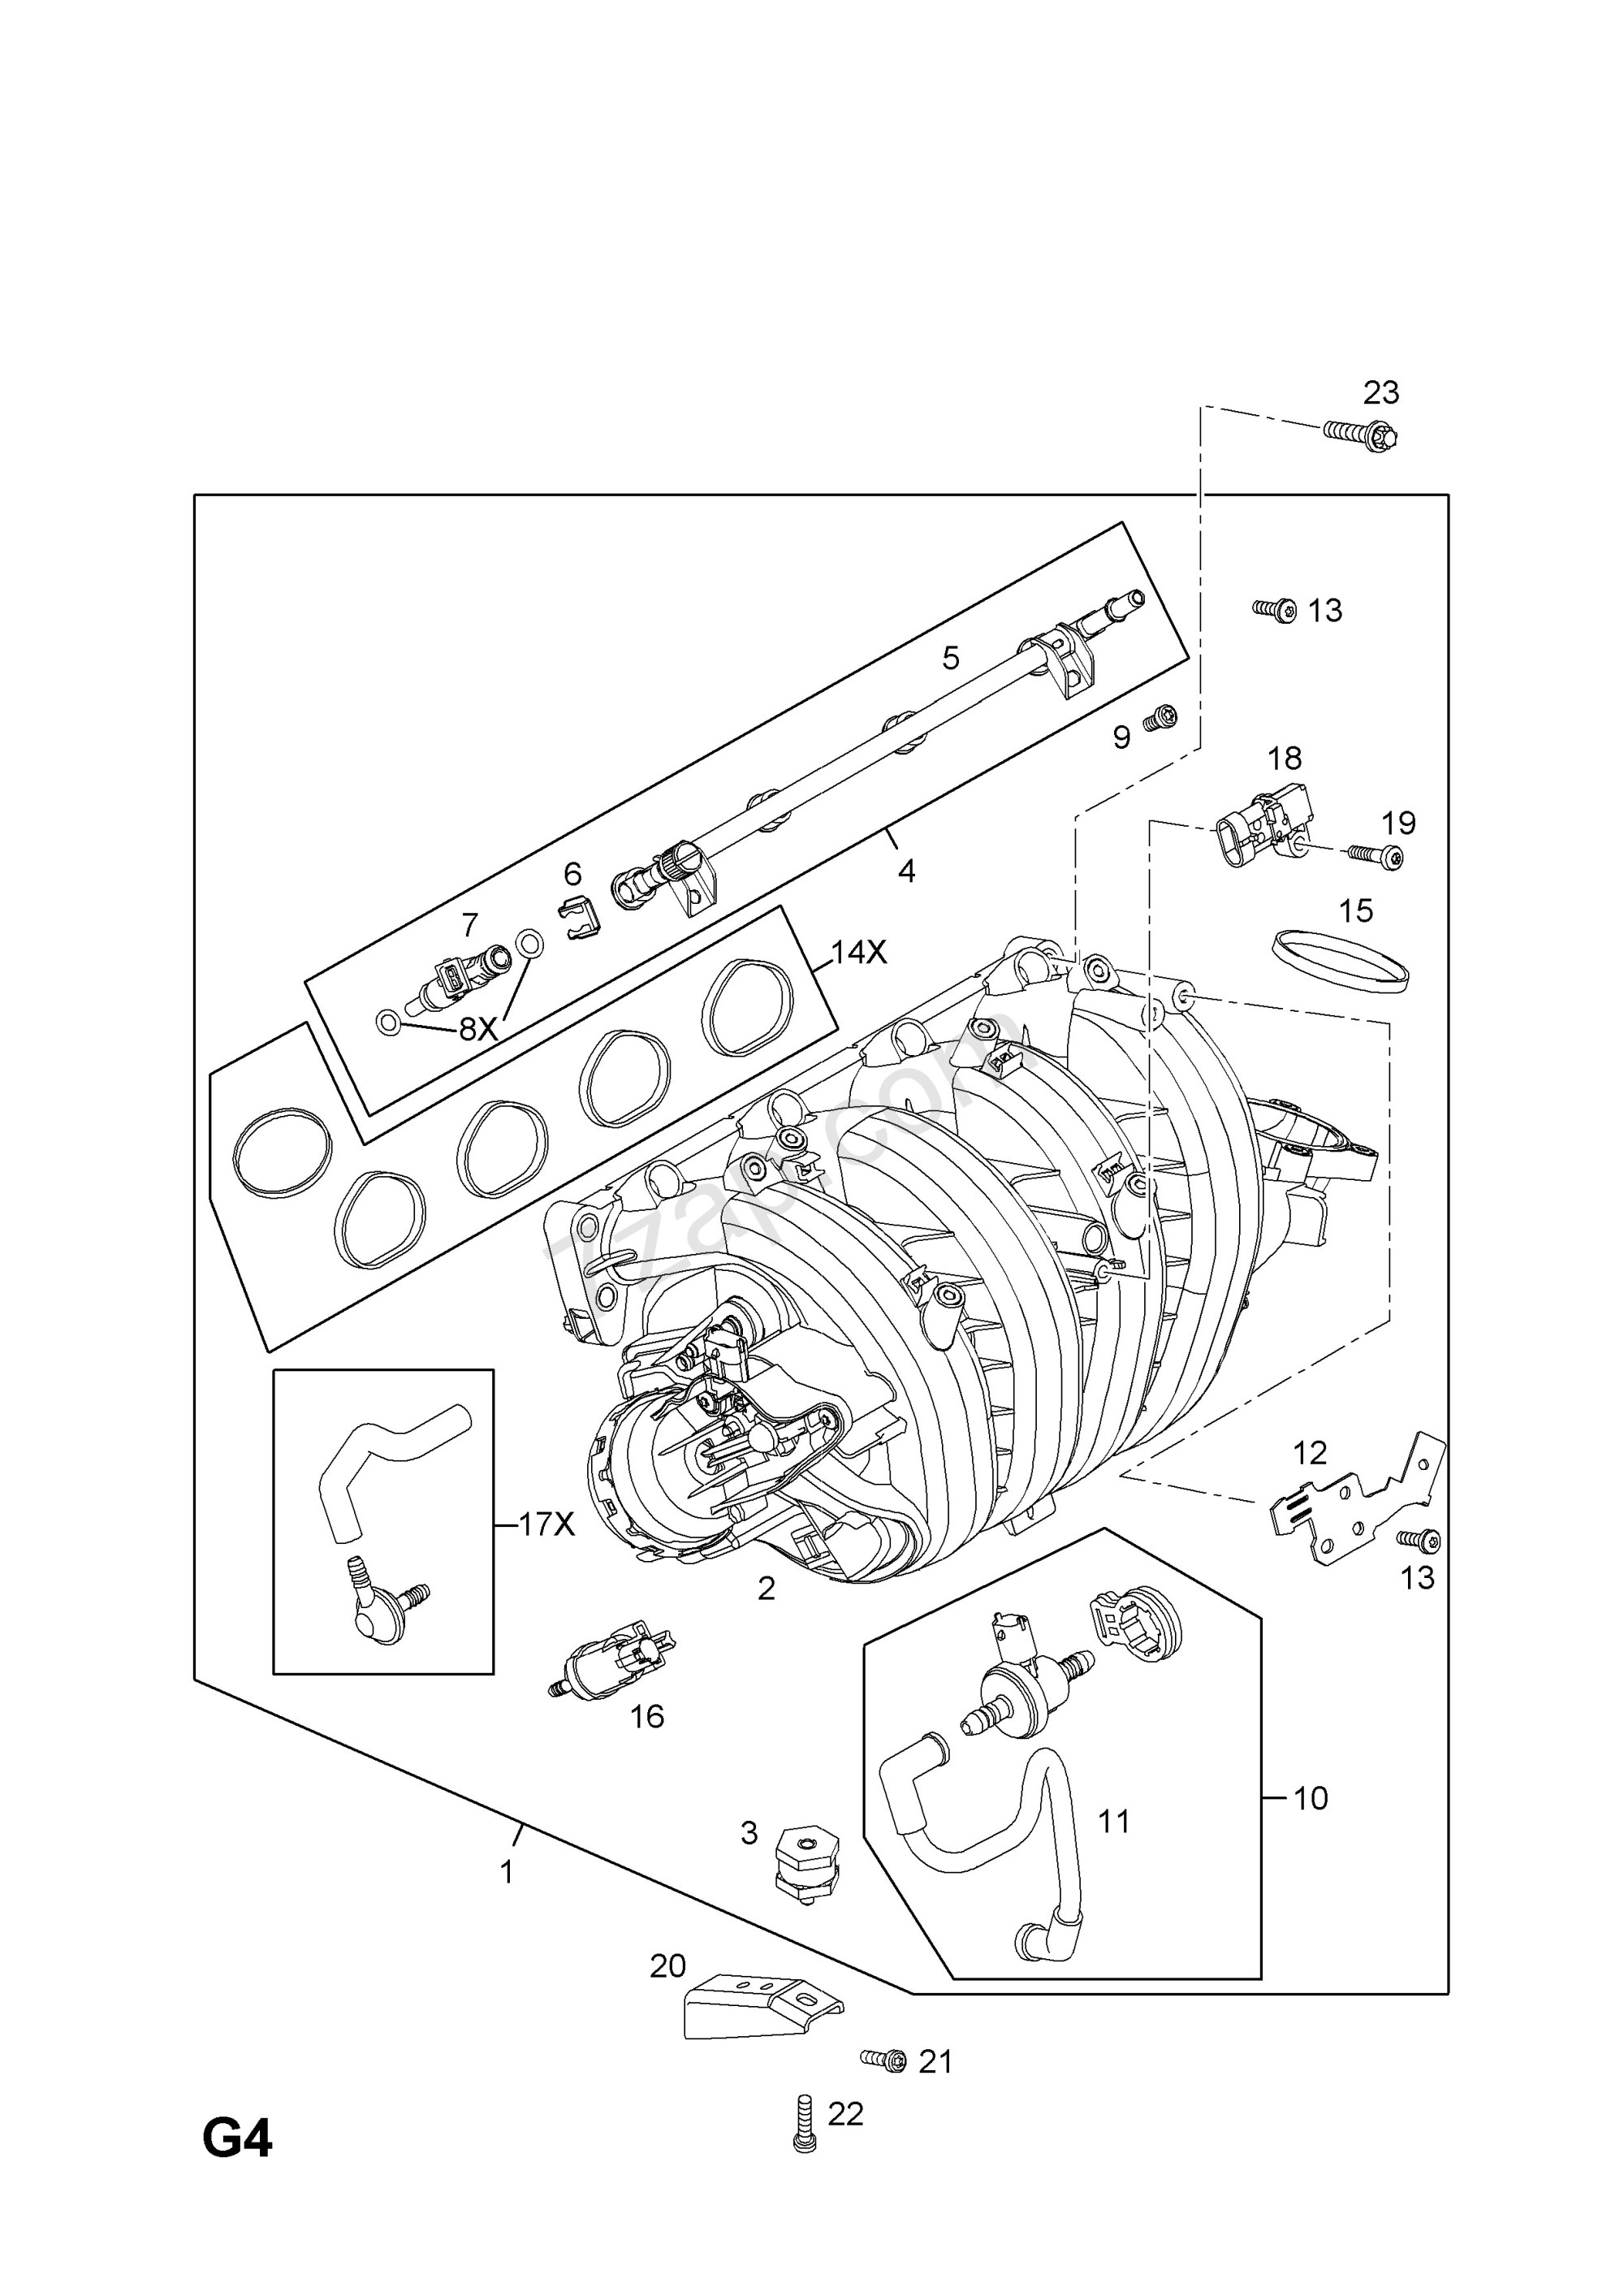 hight resolution of opel corsa engine diagram manual